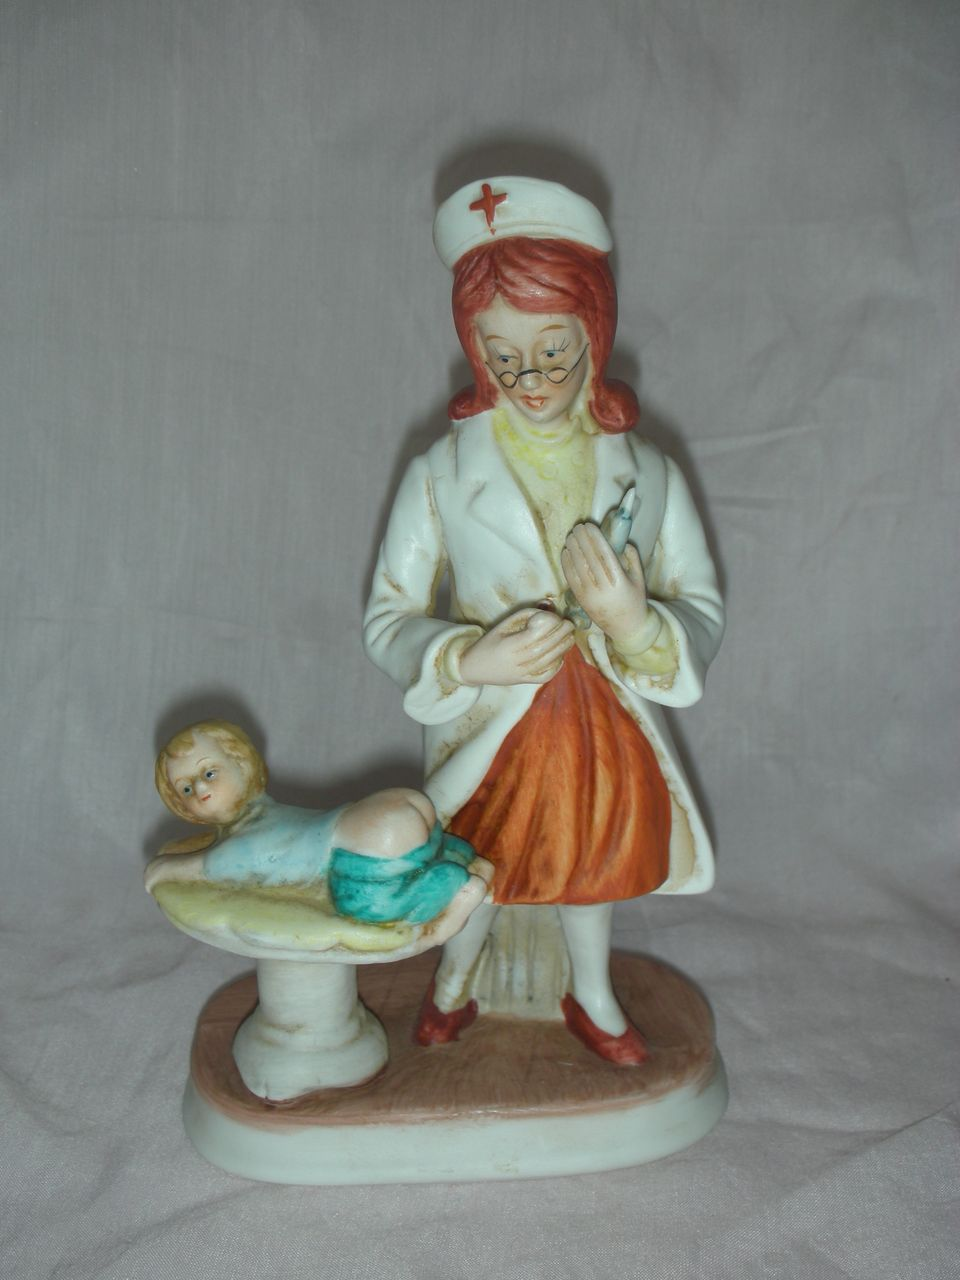 Vintage Nurse Bisque Figurine Figure RN giving Baby a Shot